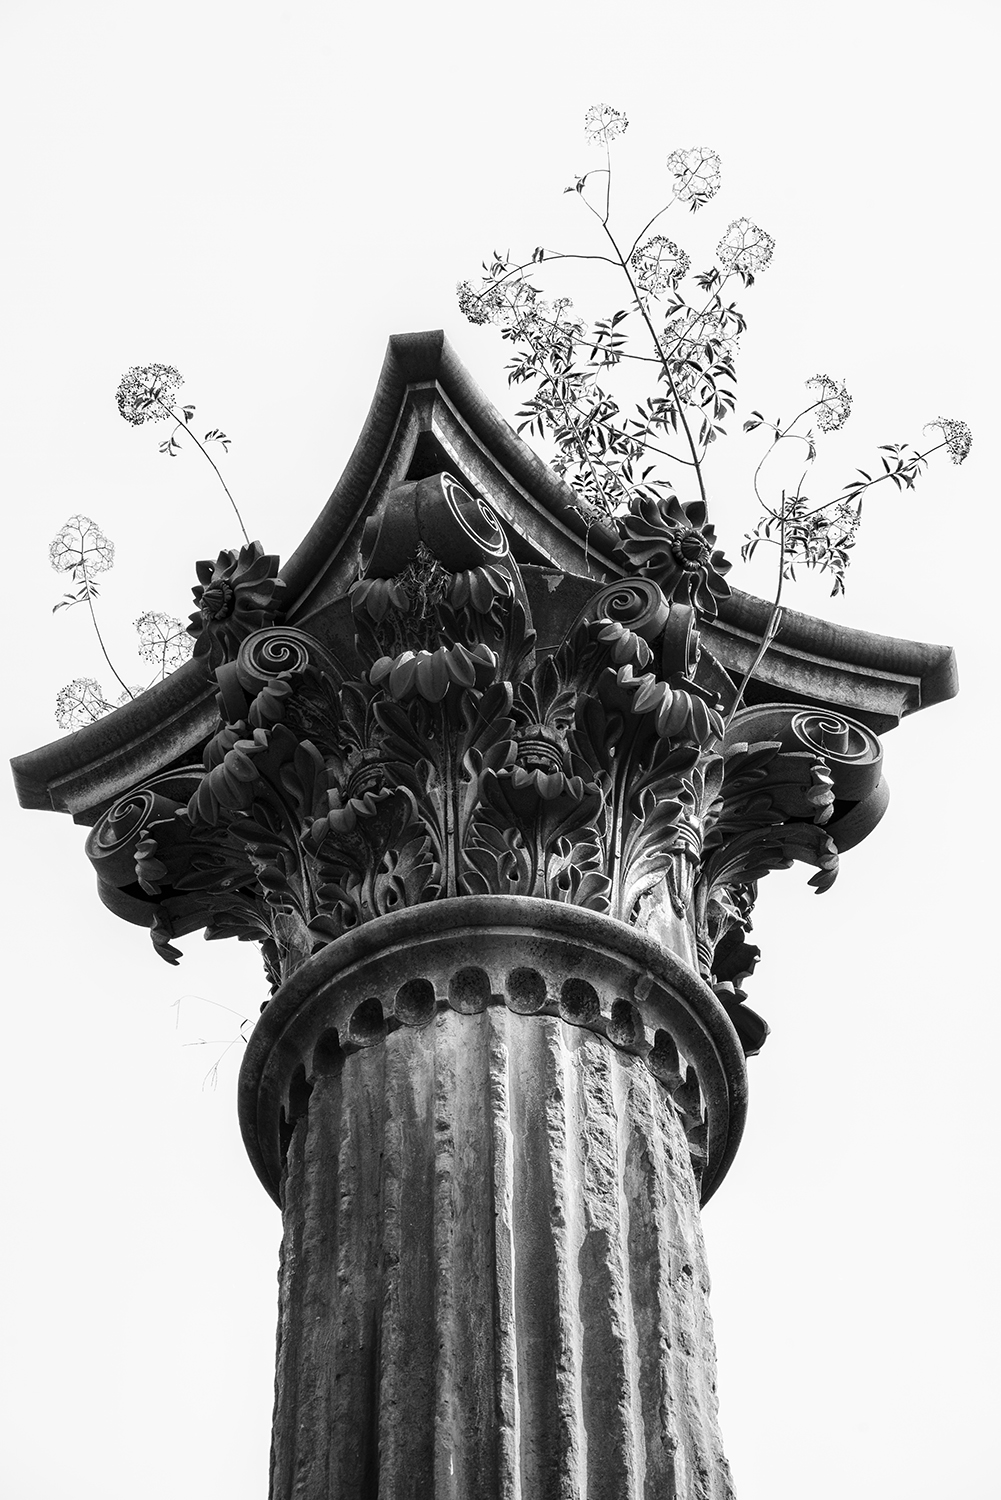 photograph of a ruined column at windsor ruins by fine art photographer Keith Dotson